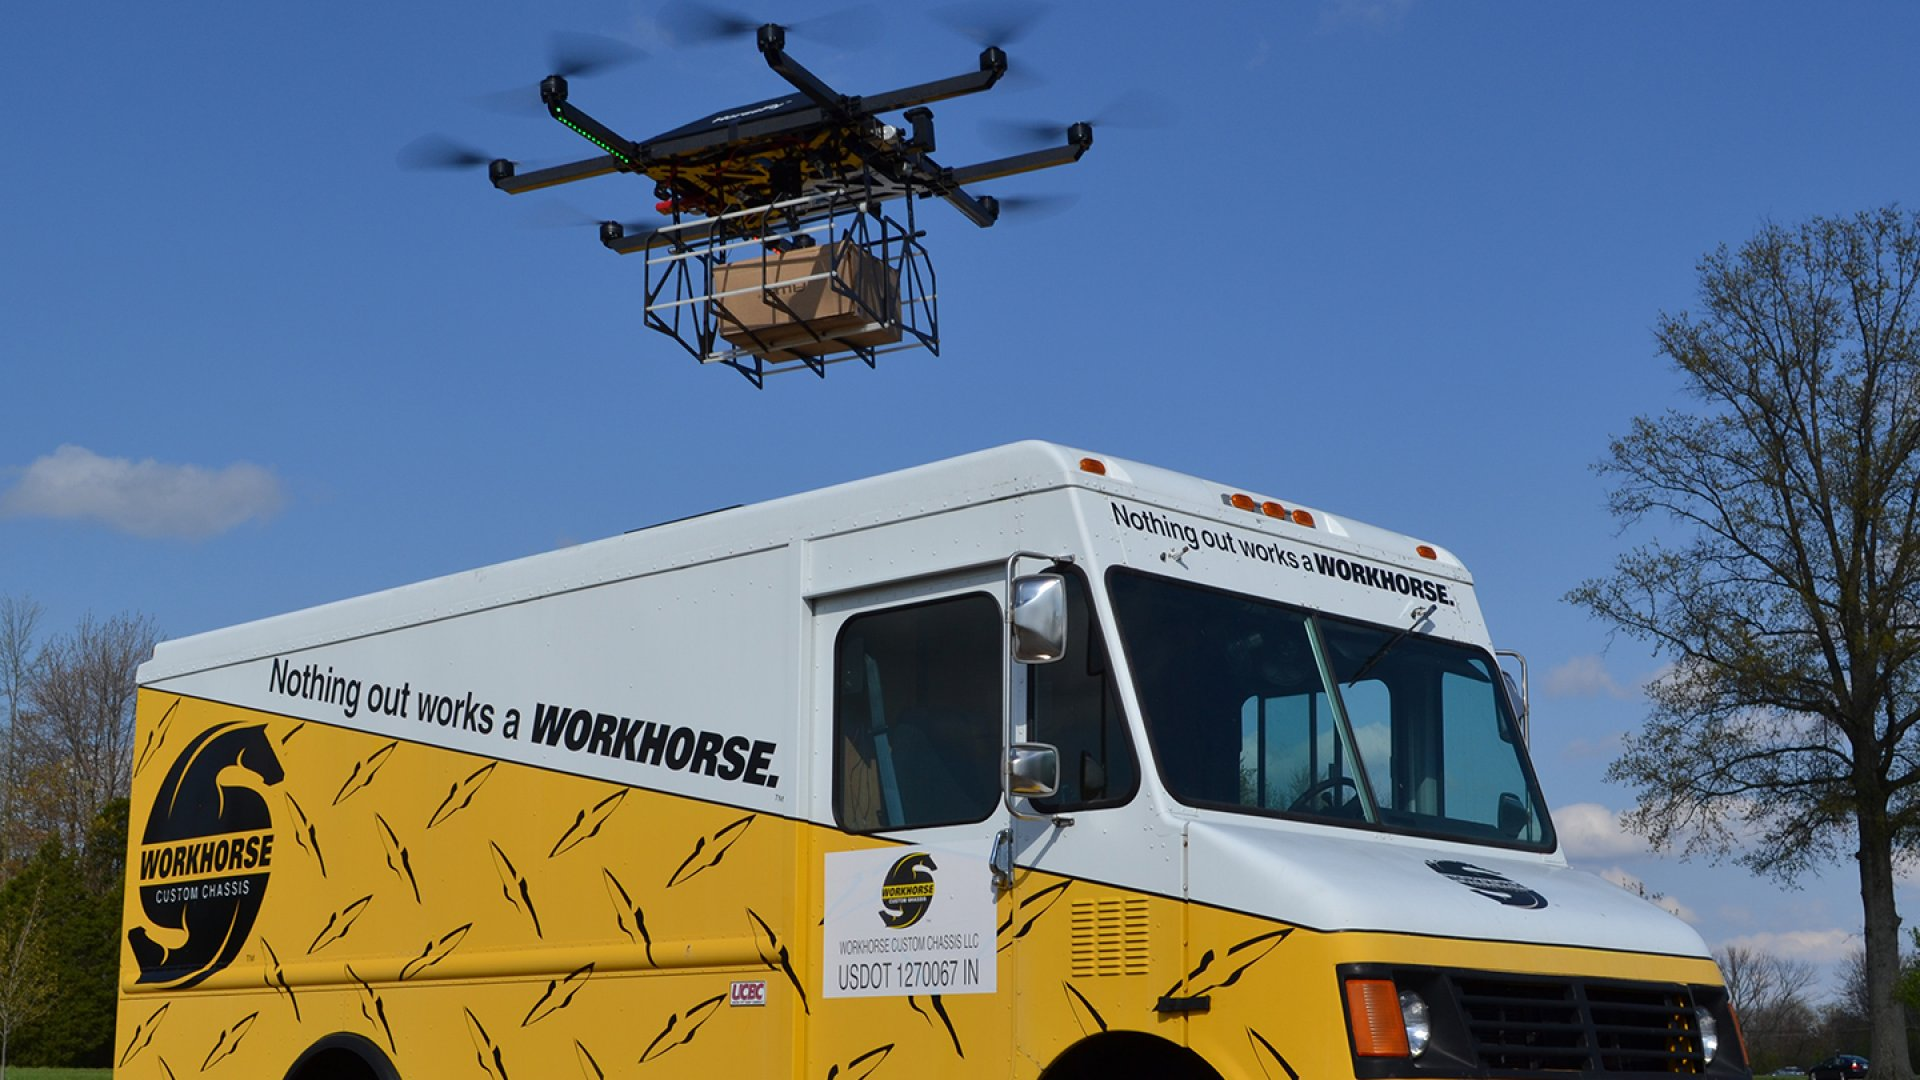 Workhorse, an electric truck manufacturer that sells to UPS, is working on a new truck outfitted with a drone loading dock and launch pad on the roof. As soon as commercial drone laws pass, Workhorse hopes to supply delivery companies with its technology.